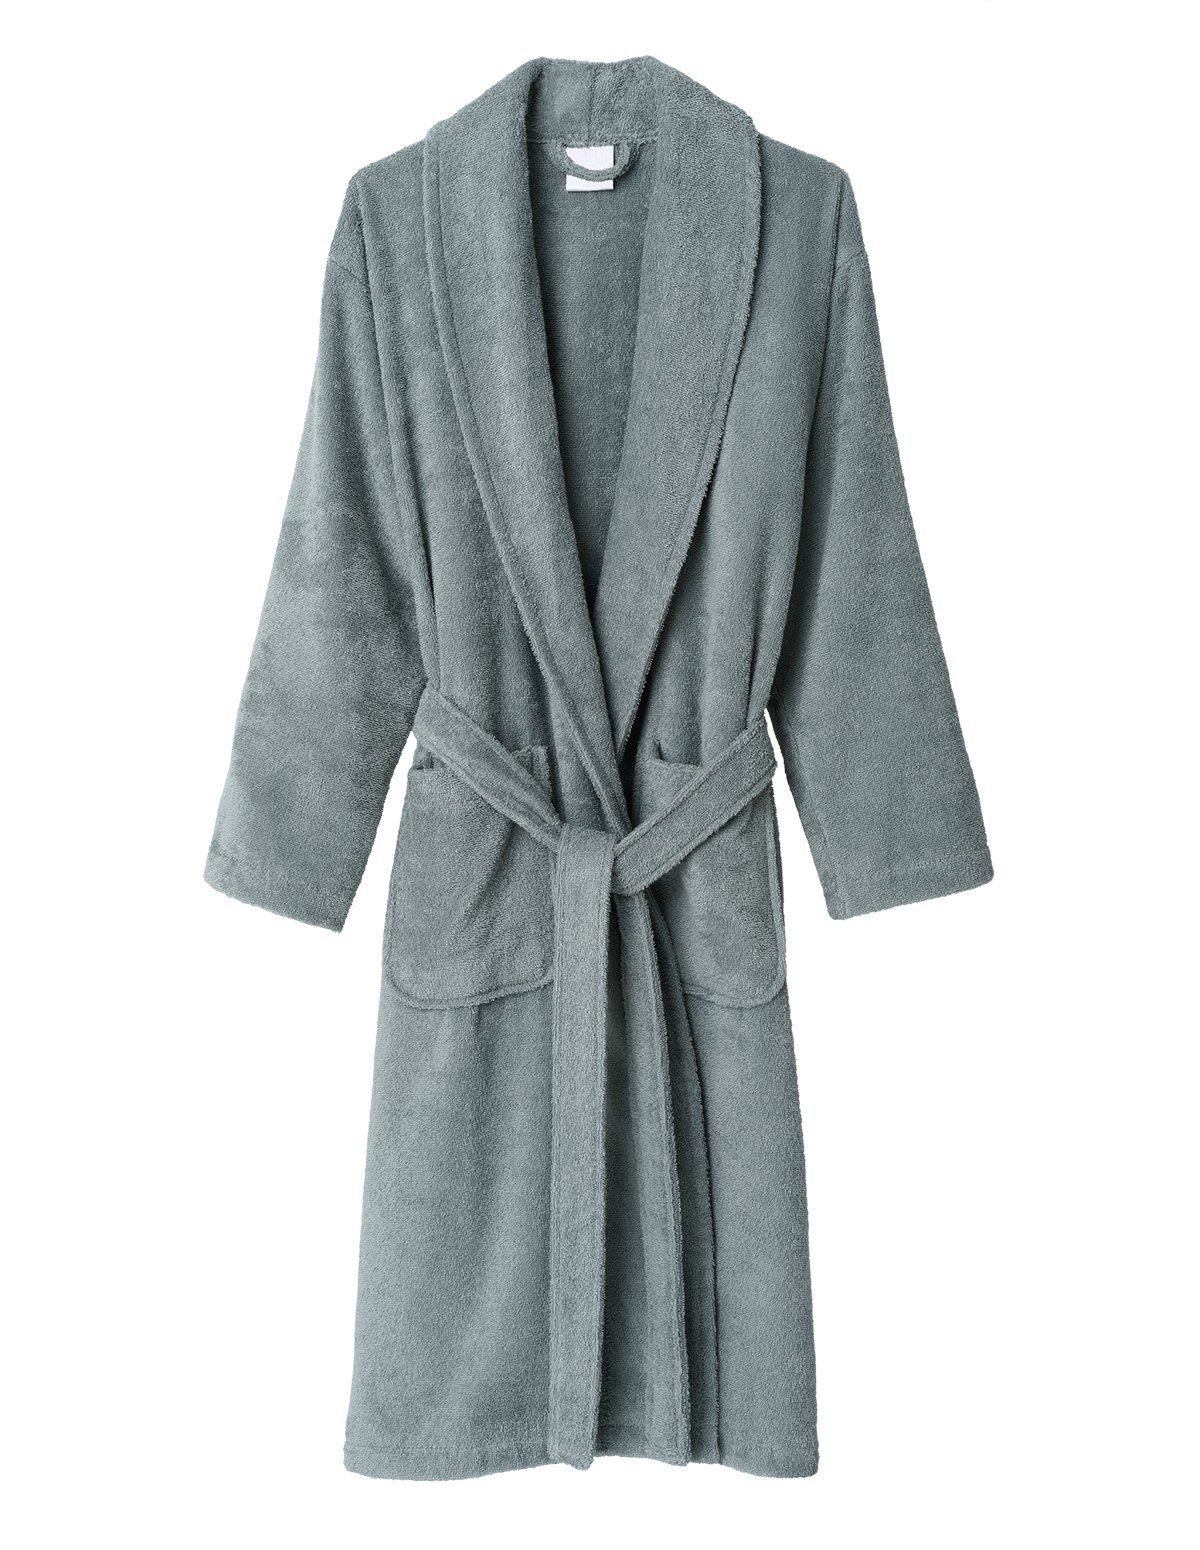 TowelSelections Women's Robe, Turkish Cotton Terry Shawl Bathrobe Small/Medium Quarry